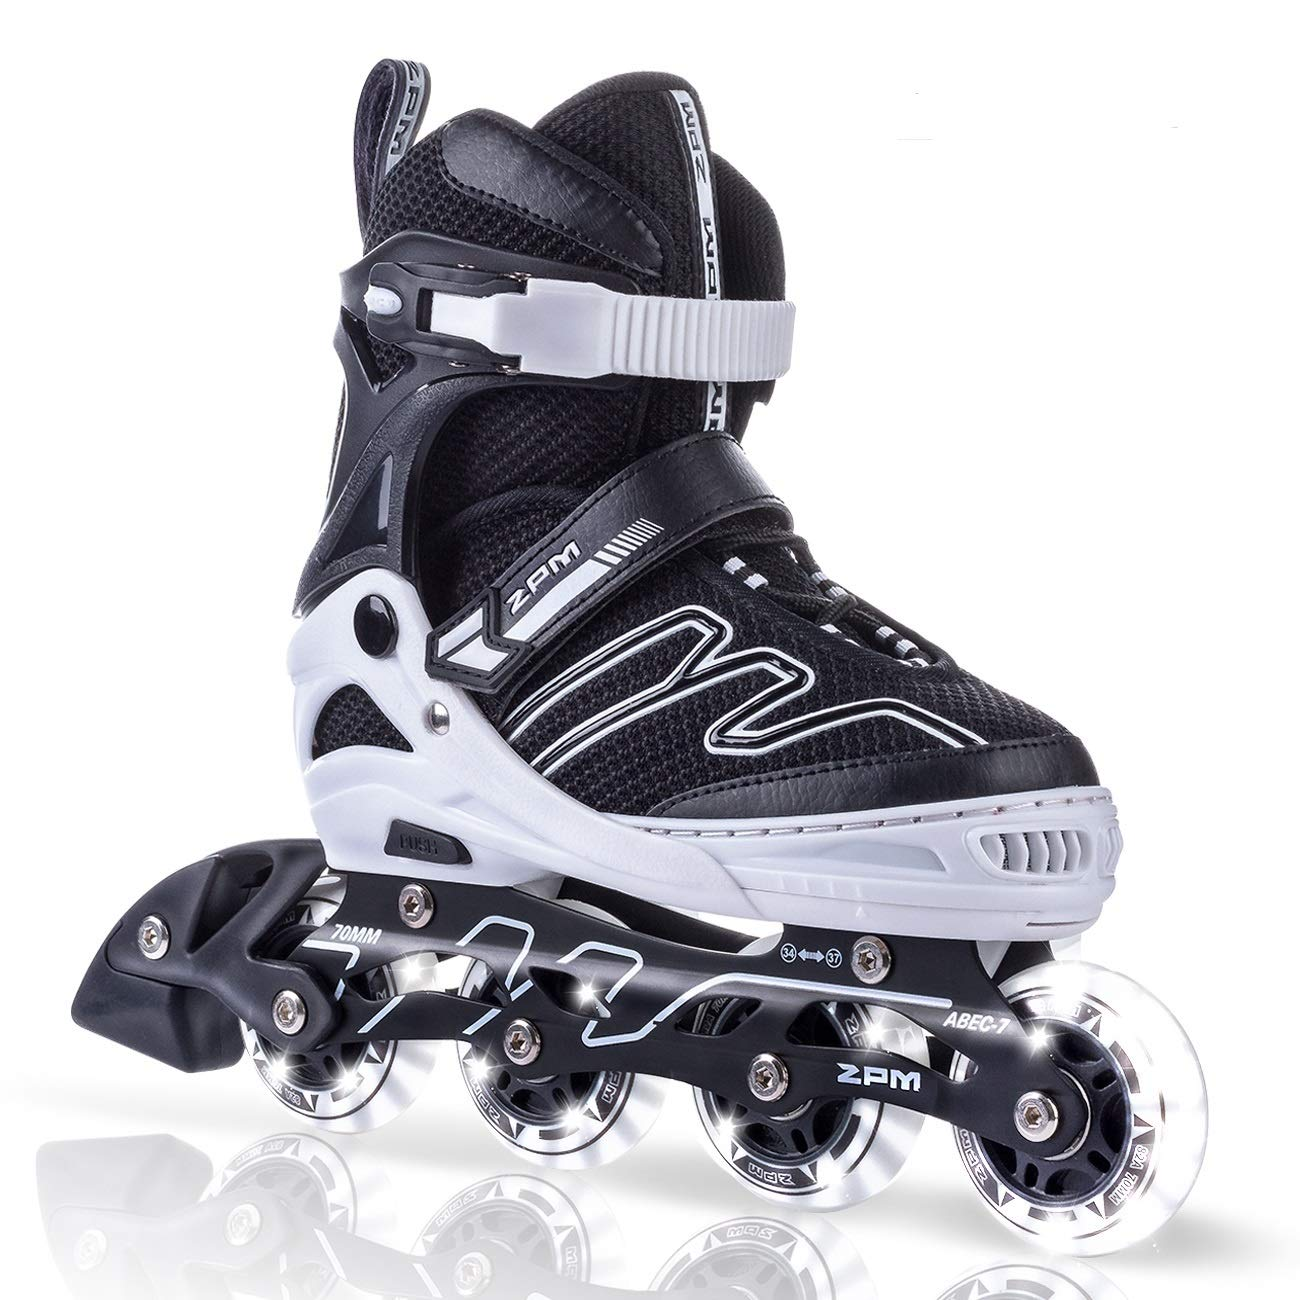 2PM SPORTS Exthrax Kids Adjustable Inline Skates with Light up Wheels, Fun Flashing Illuminating Roller Skates for Boys Girls - Small(Y11-1 US)